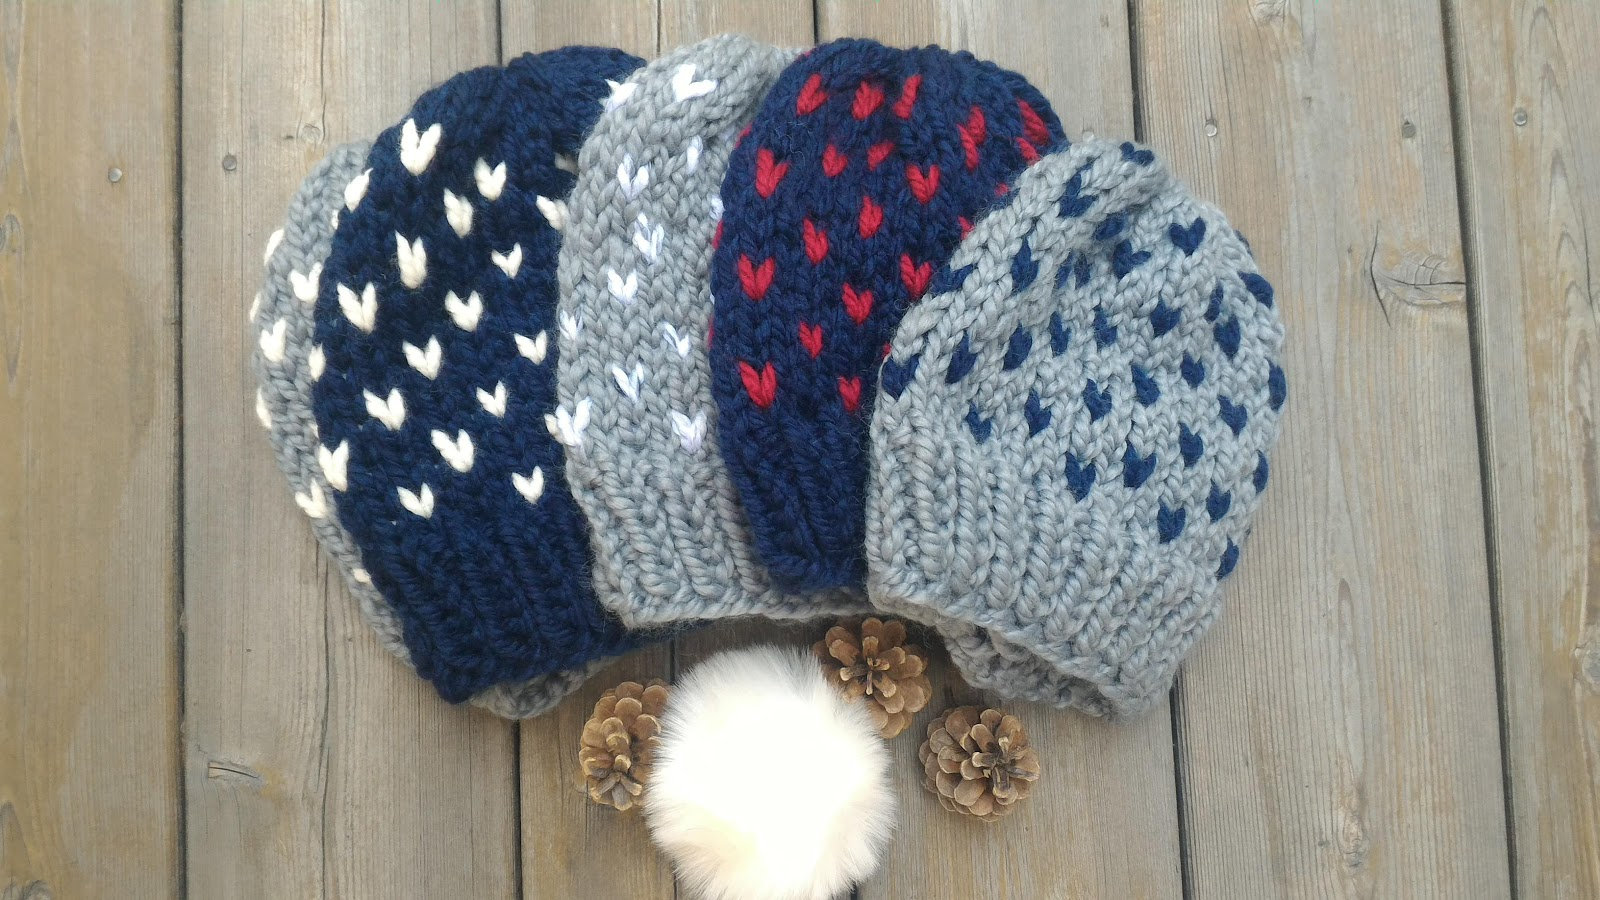 cb8d83442a1 This will now be by go to hat for friends and family for the winter  upcoming winter season. I m planning on adding pompom toppers to some